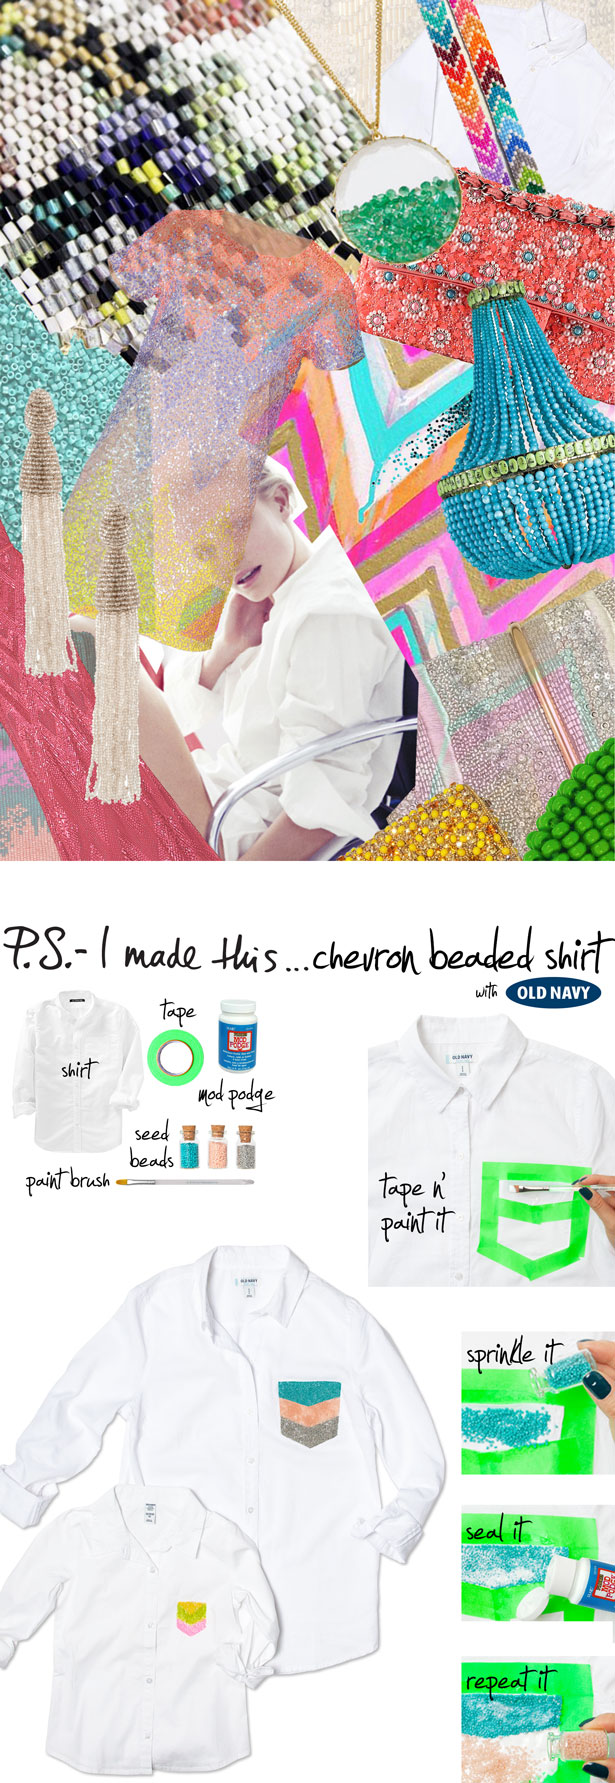 07.28.14_OLDNAVY_Beaded-Pocket-Shirt2